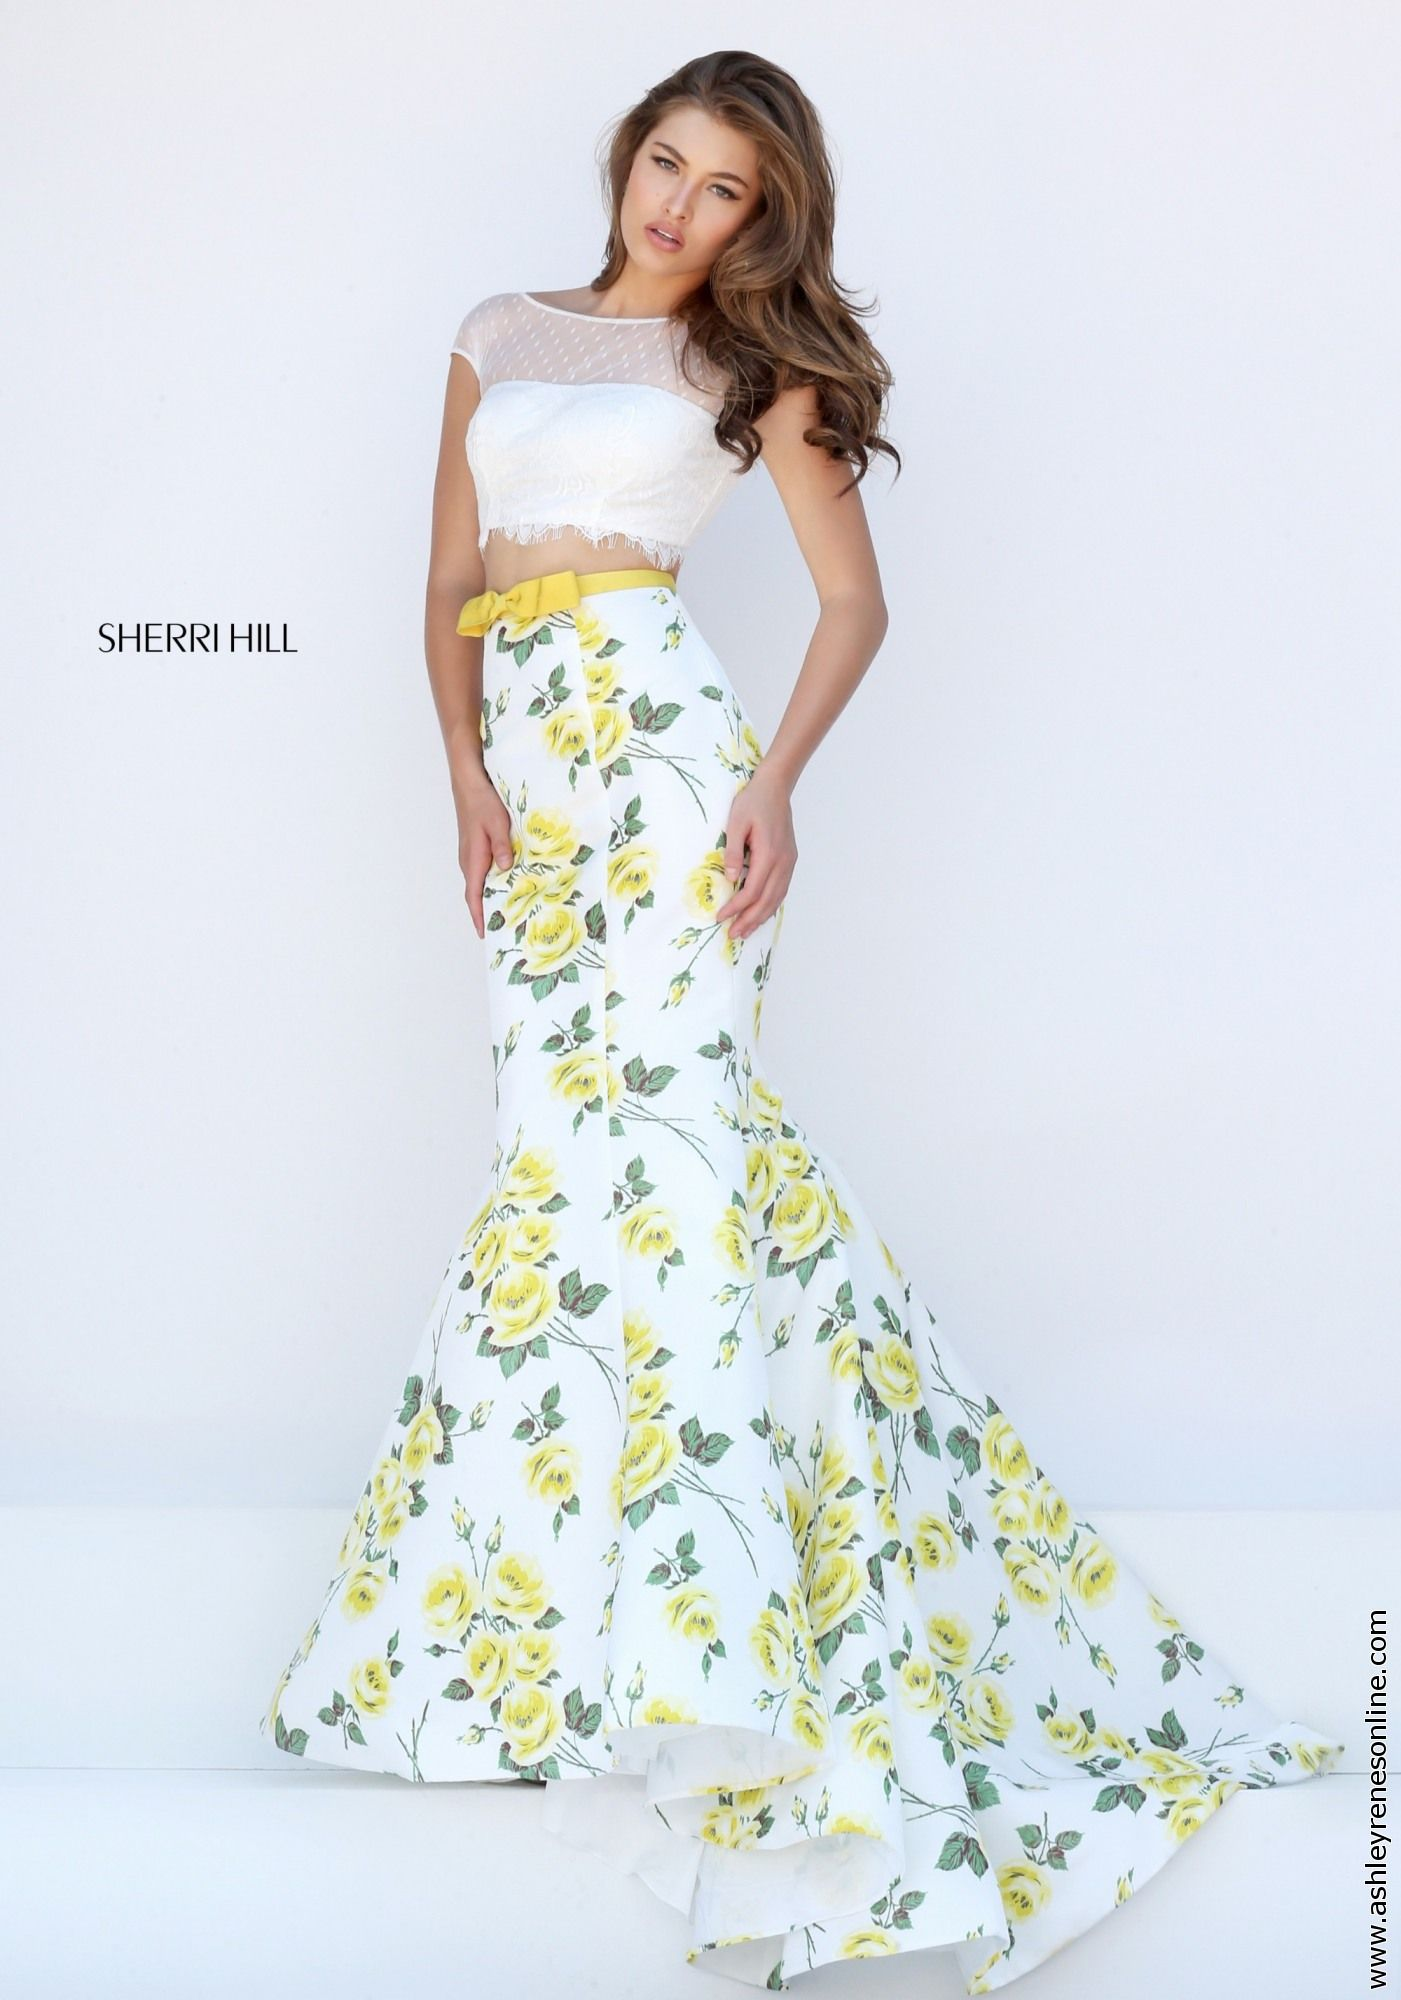 14eac42bc7b Sherri Hill yellow floral prom dress at Ashley Rene s Elkhart